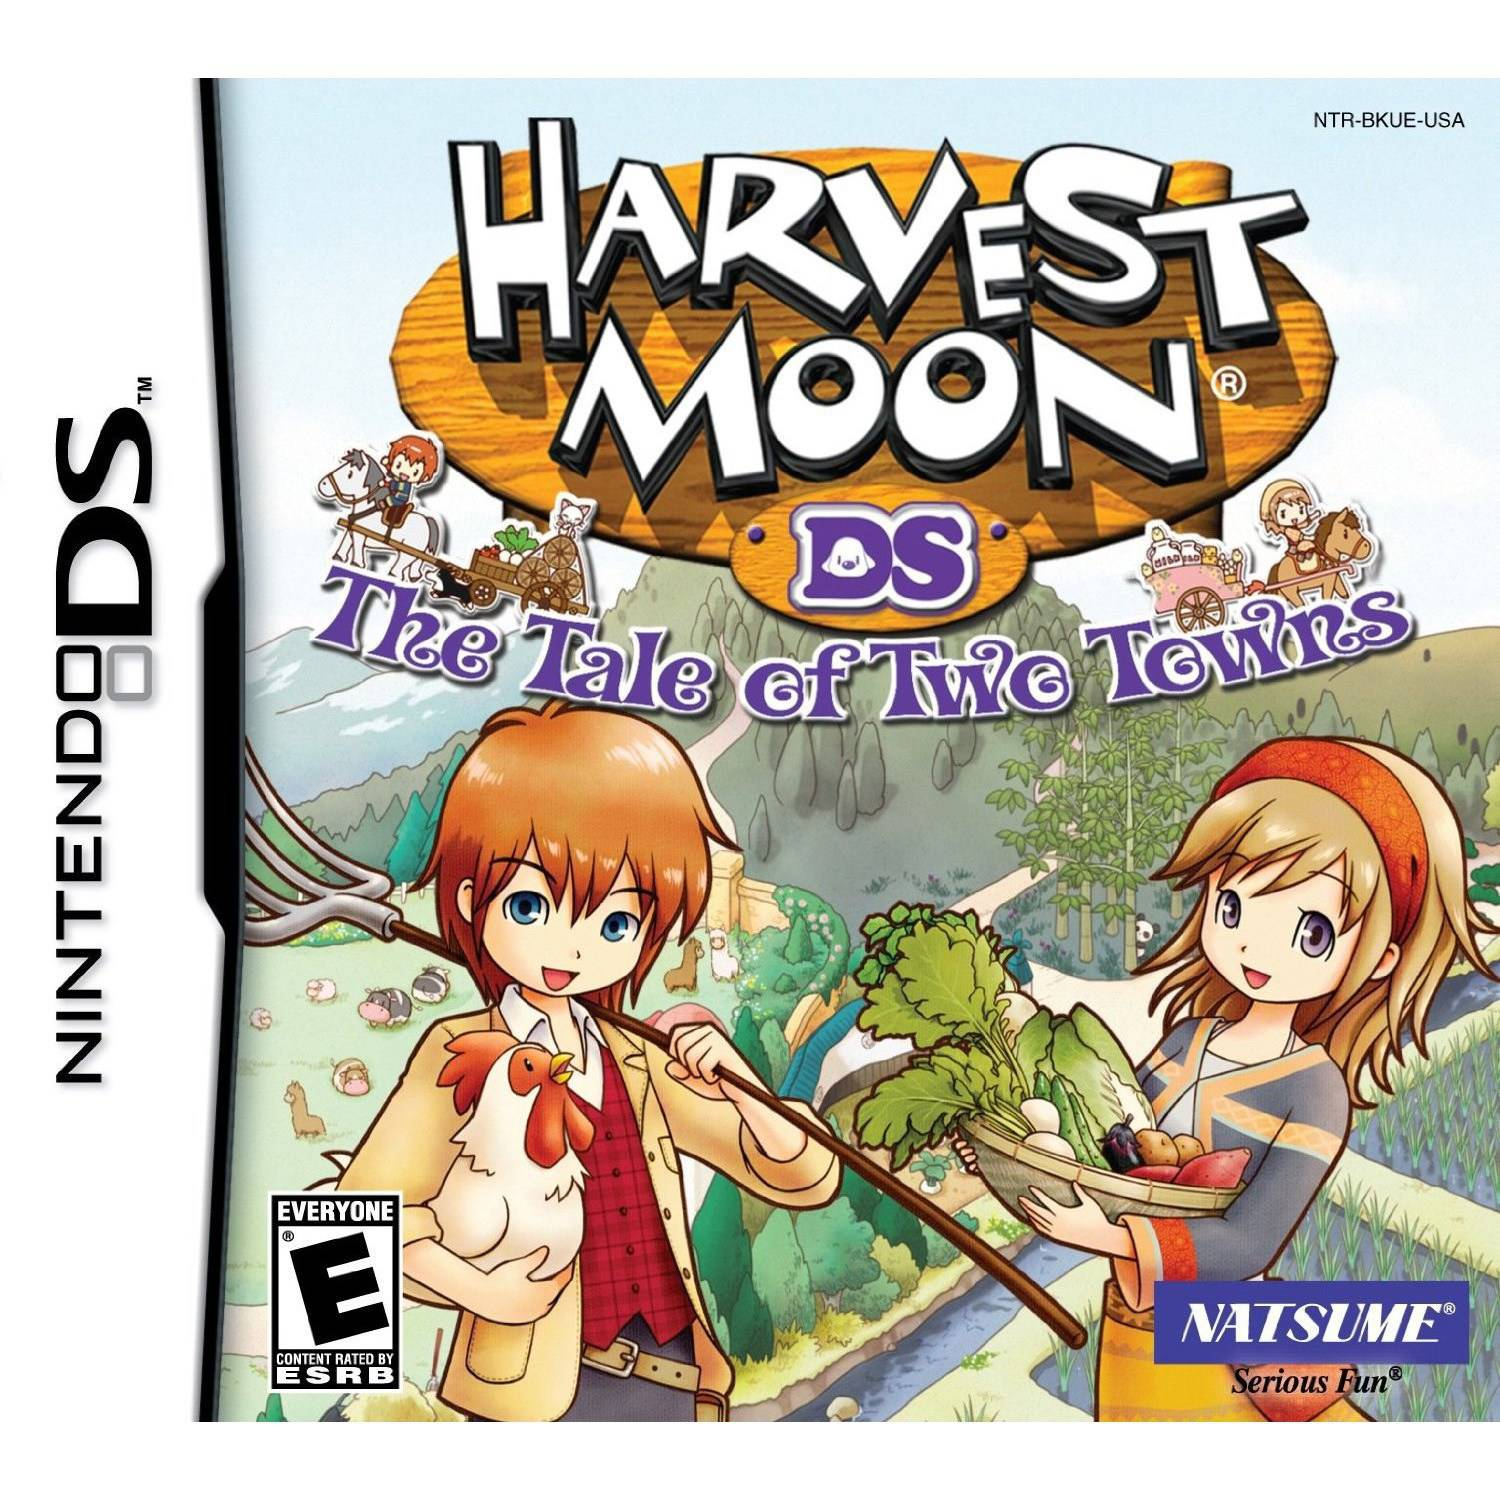 Harvest Moon 3D - The Tale of Two Towns - Nintendo 3DS